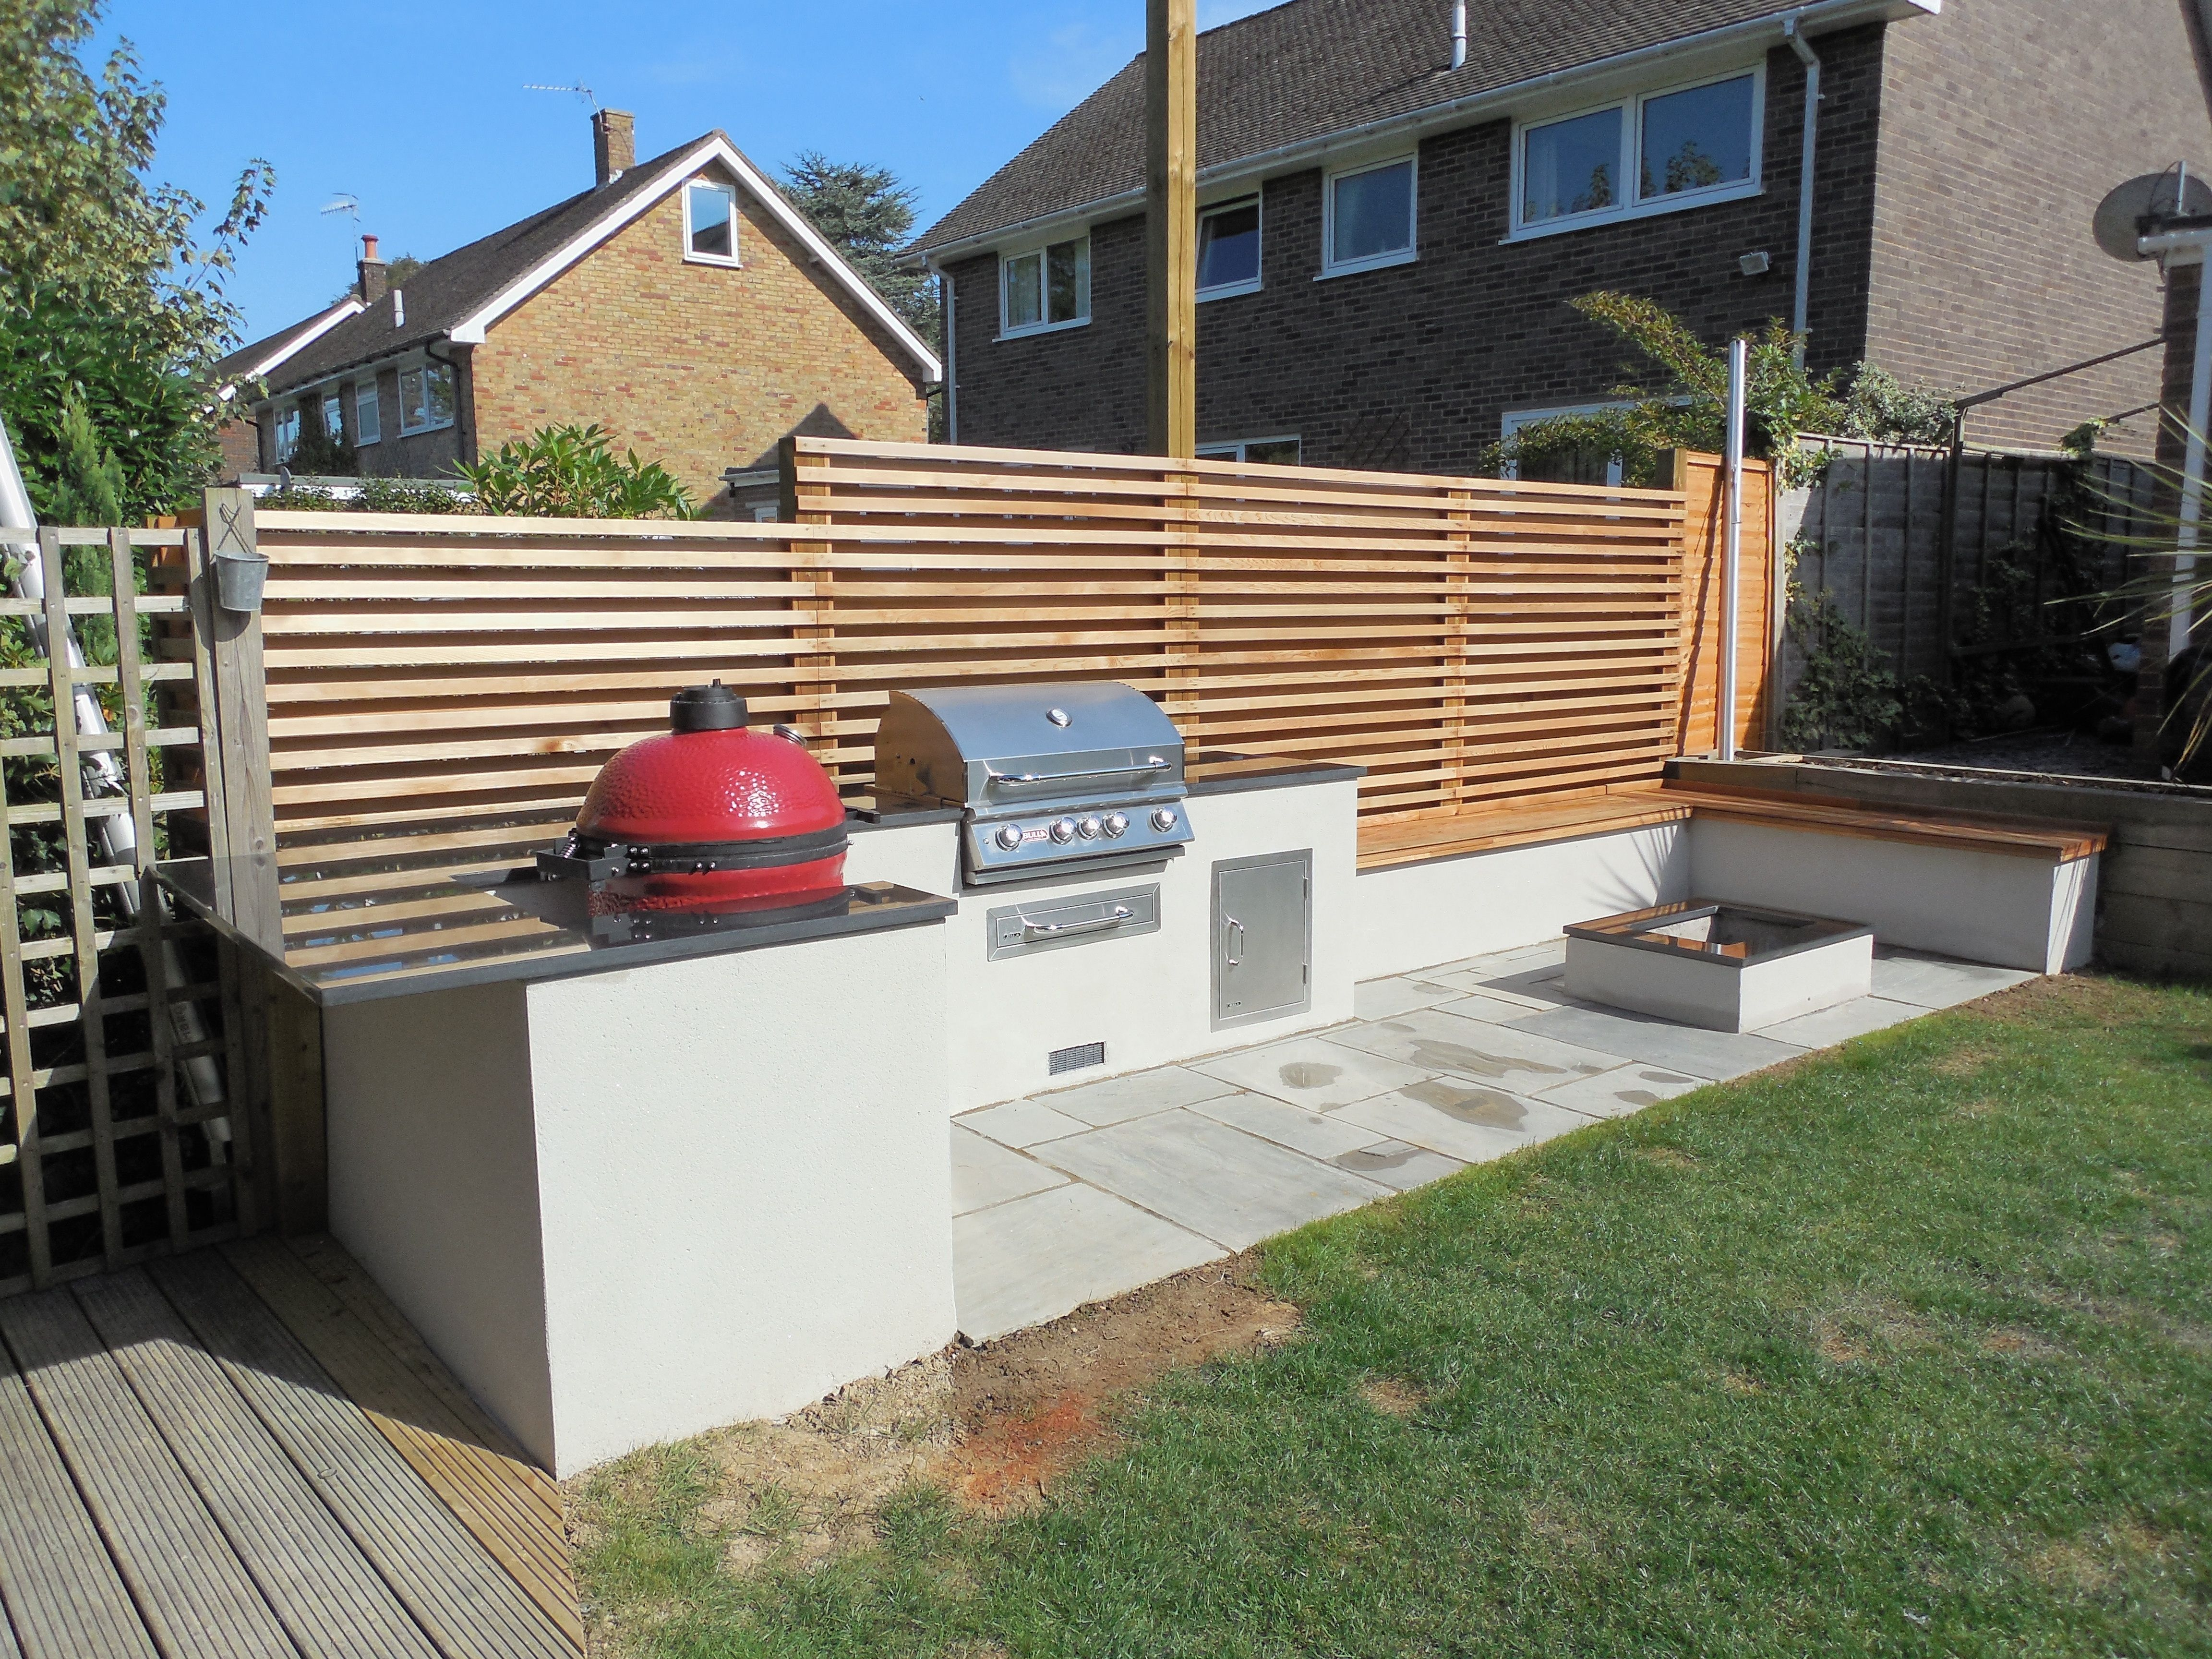 design outdoors outdoor kitchens and bbq areas | grillunterstand in